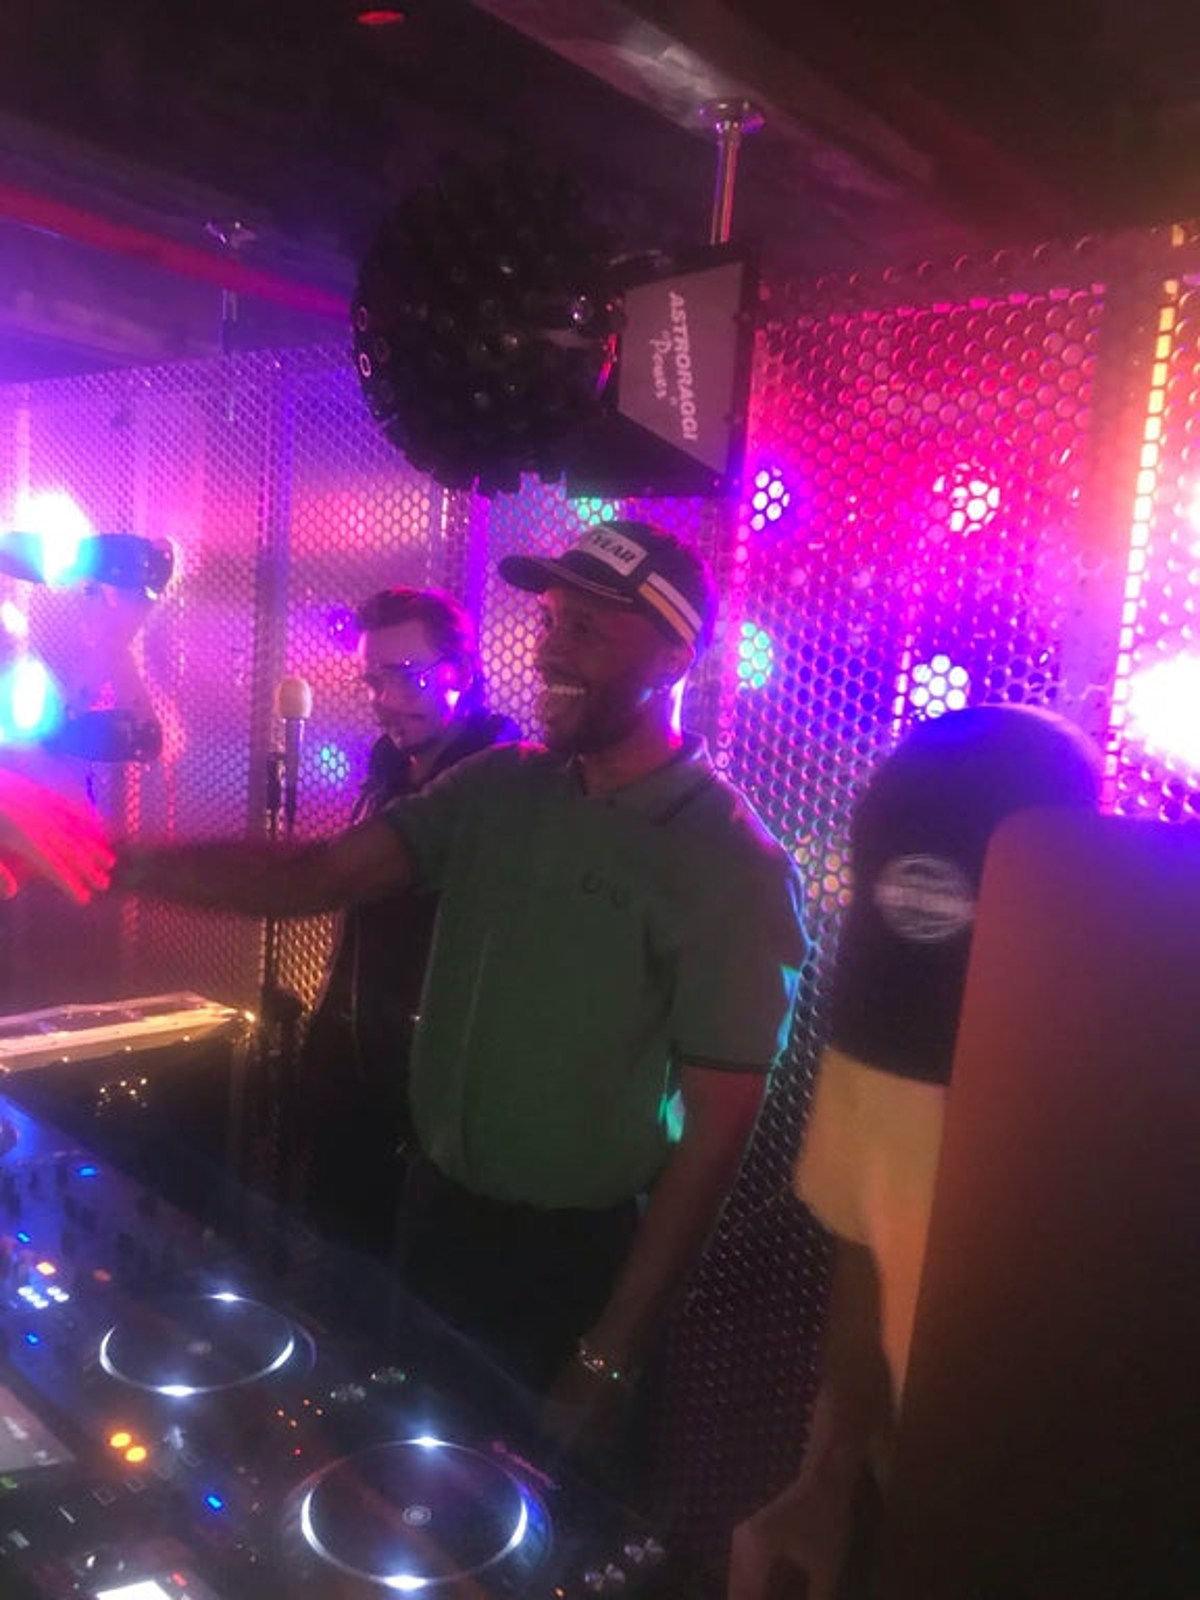 Frank Ocean debuted new music at his queer club PrEP+ launch in Queens (video)